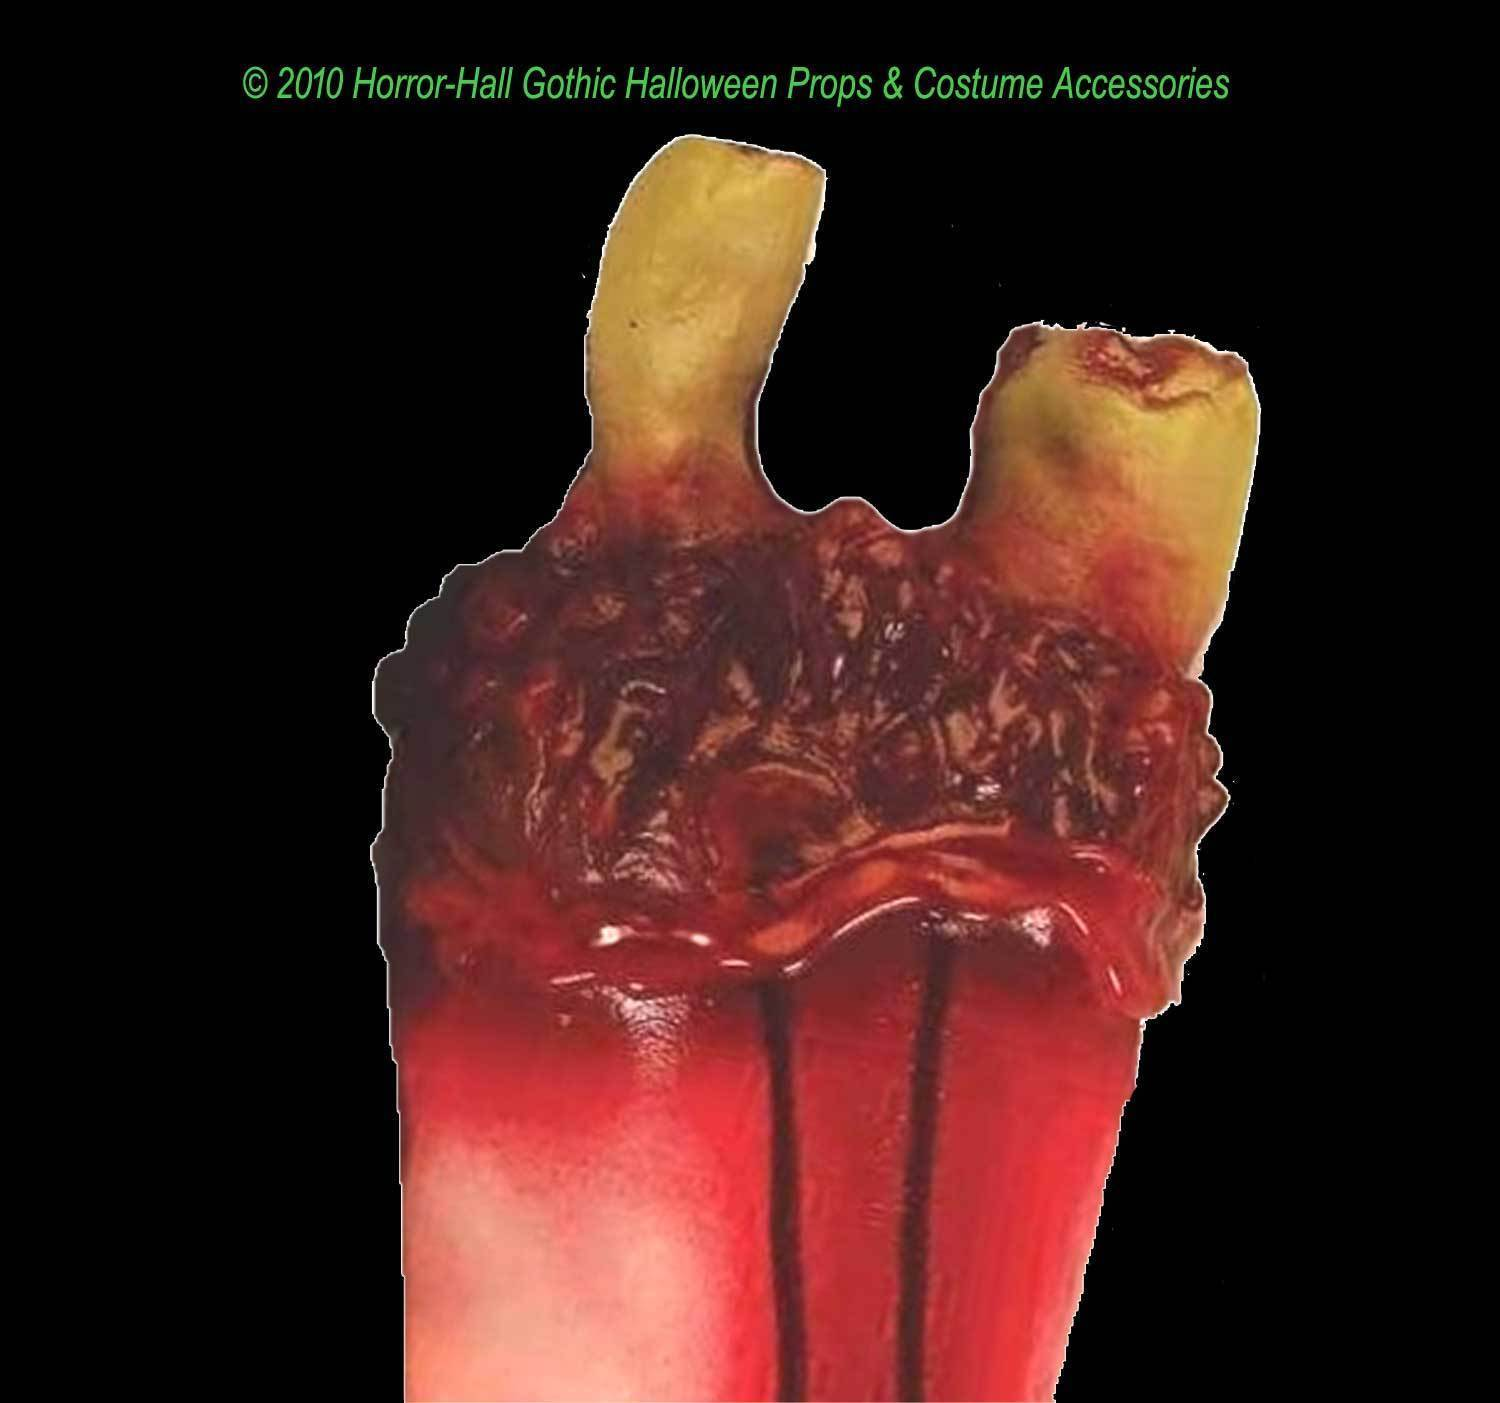 Realistic Life Size Bloody GORY SEVERED ARM HAND Body Part Halloween Horror Prop